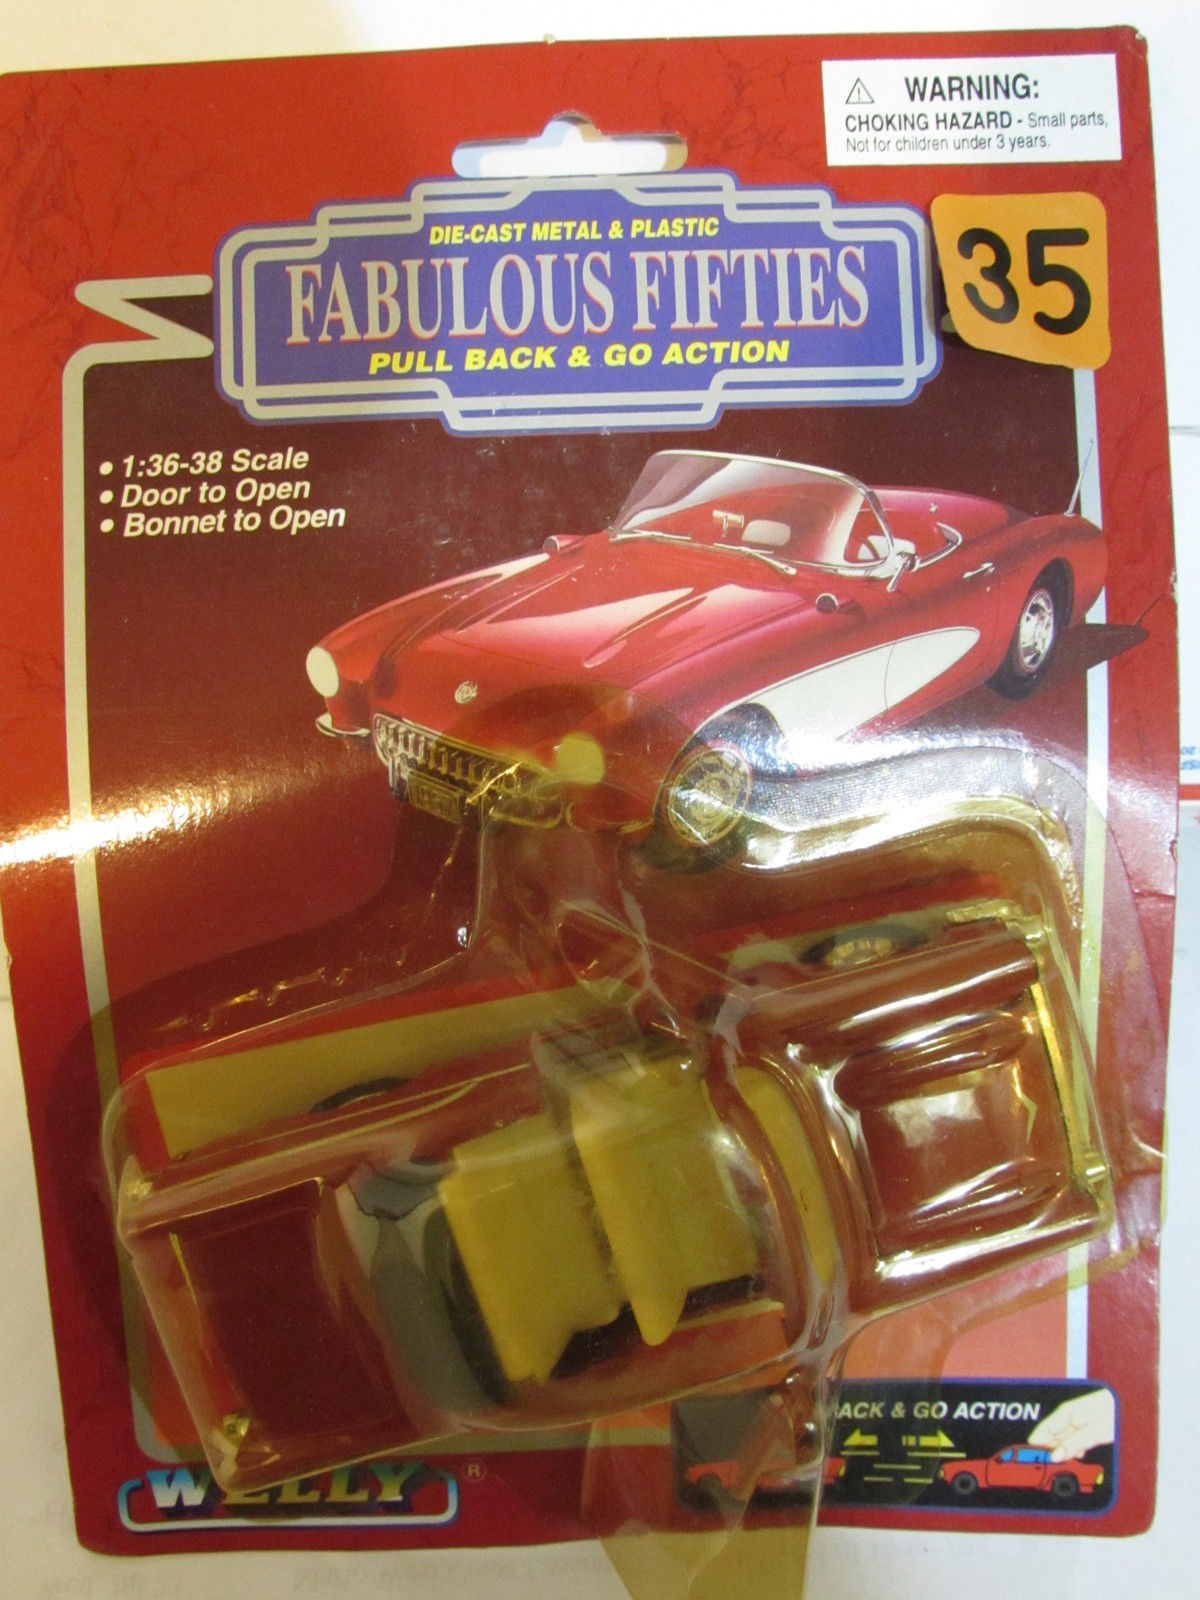 FABULOUS FIFTIES DIE CAST METAL & PLASTIC - PULL BACK & GO ACTION